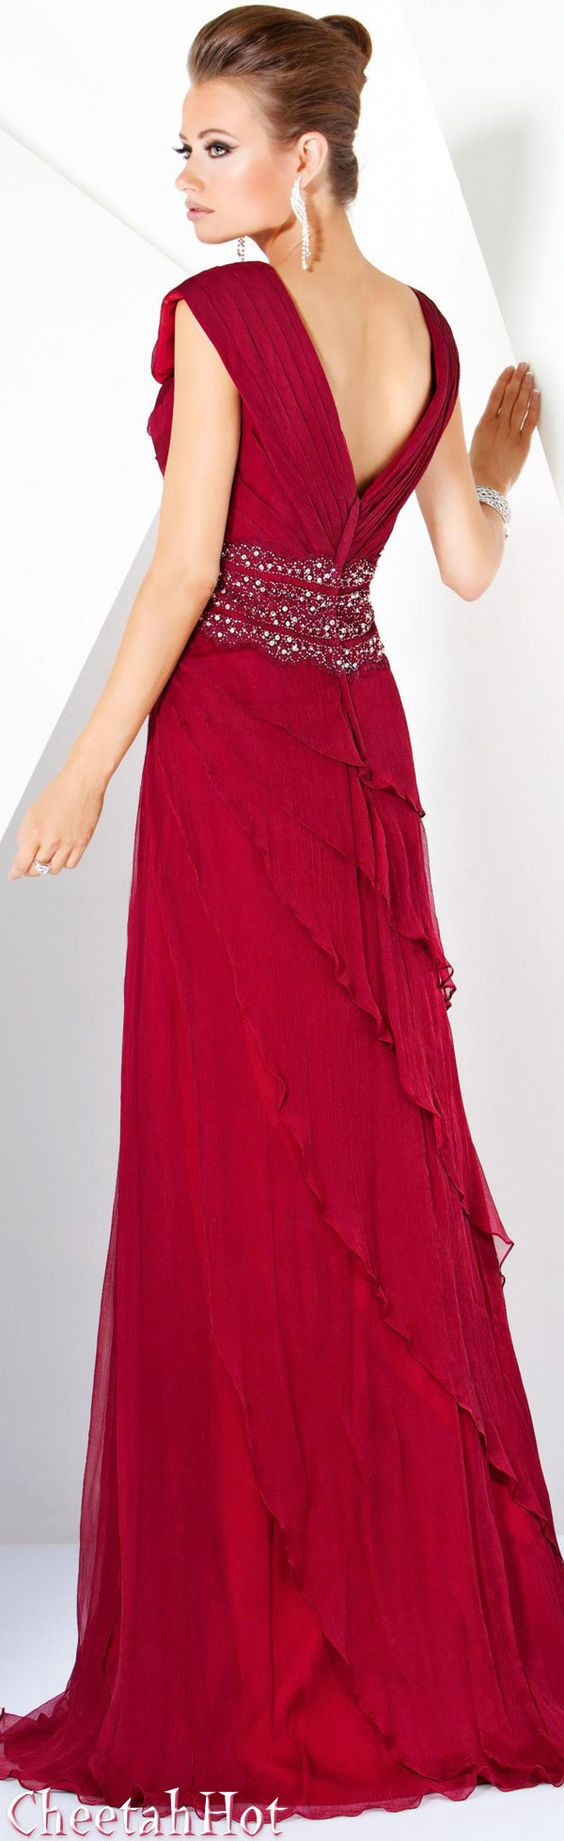 JOVANI - Authentic Designer Dress - Beautiful Long Red Gown ...